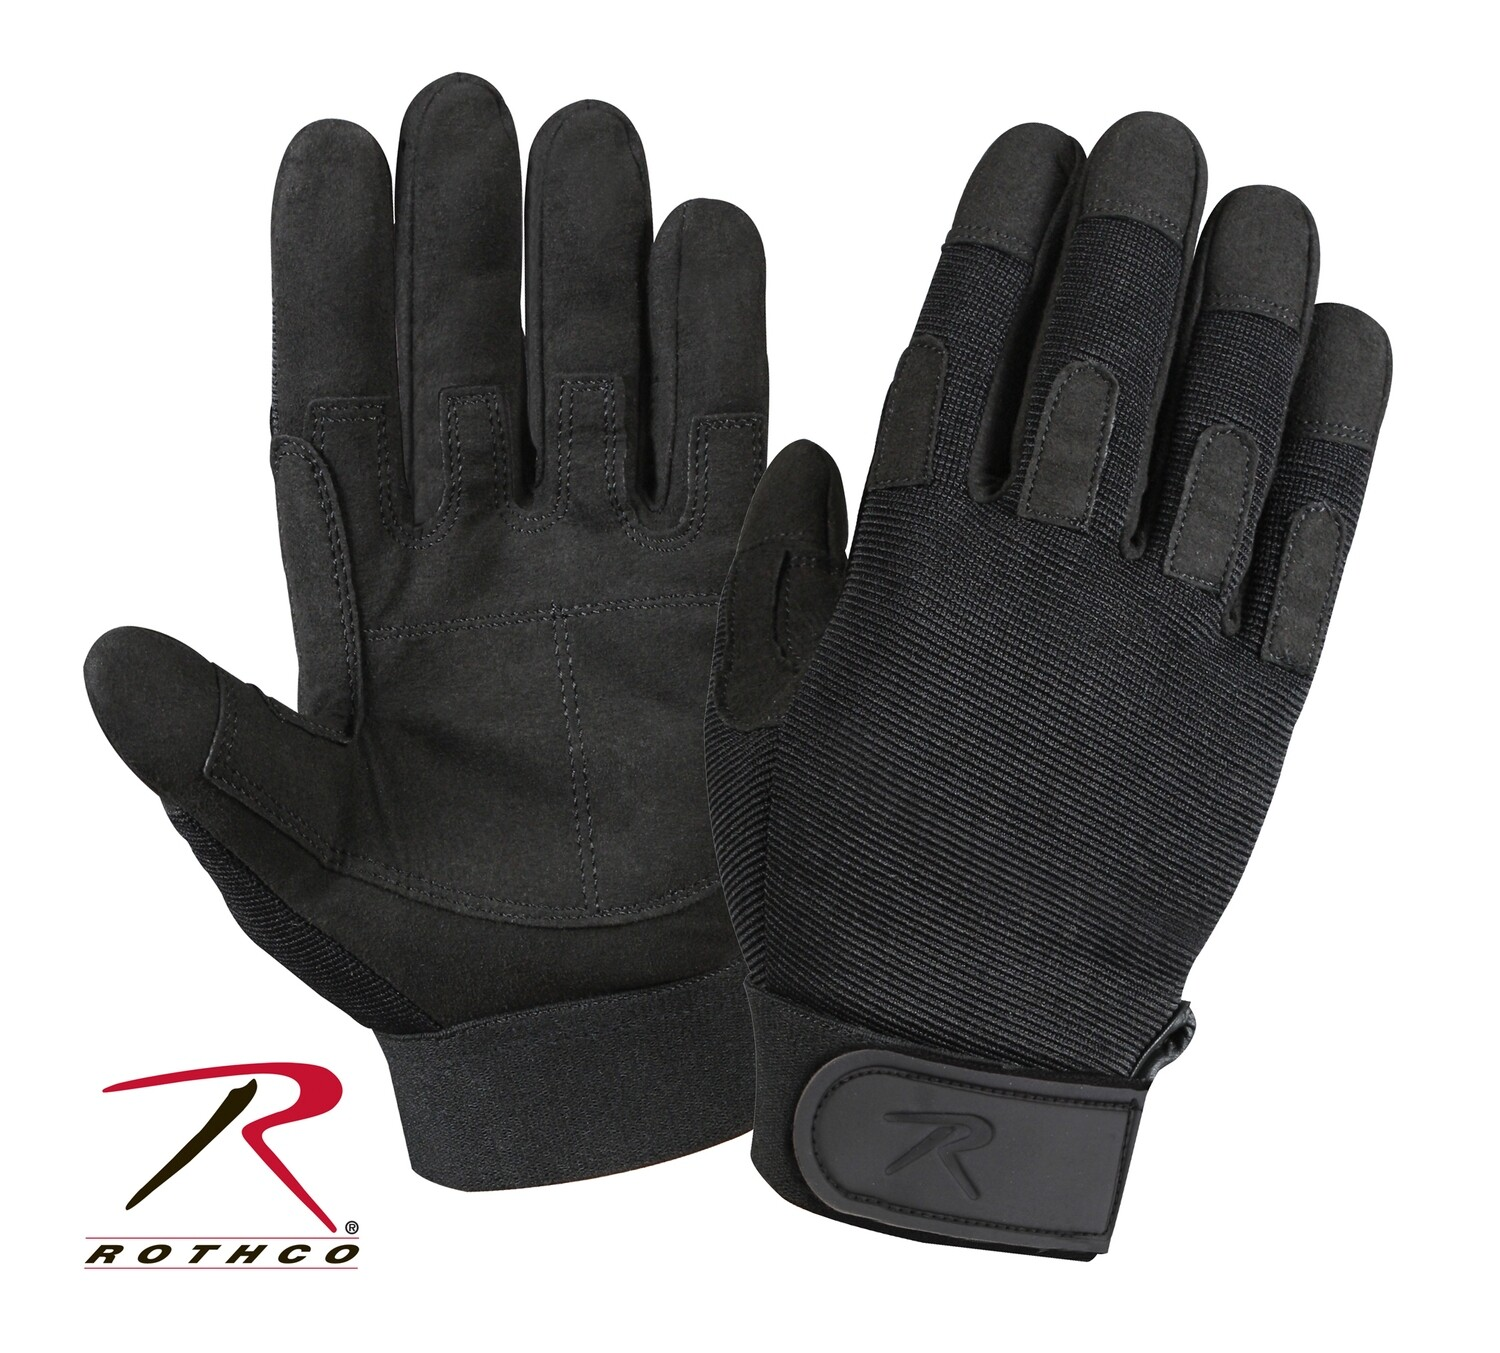 Rothco, 3469, Rothco Black Lightweight All-Purpose Duty Gloves